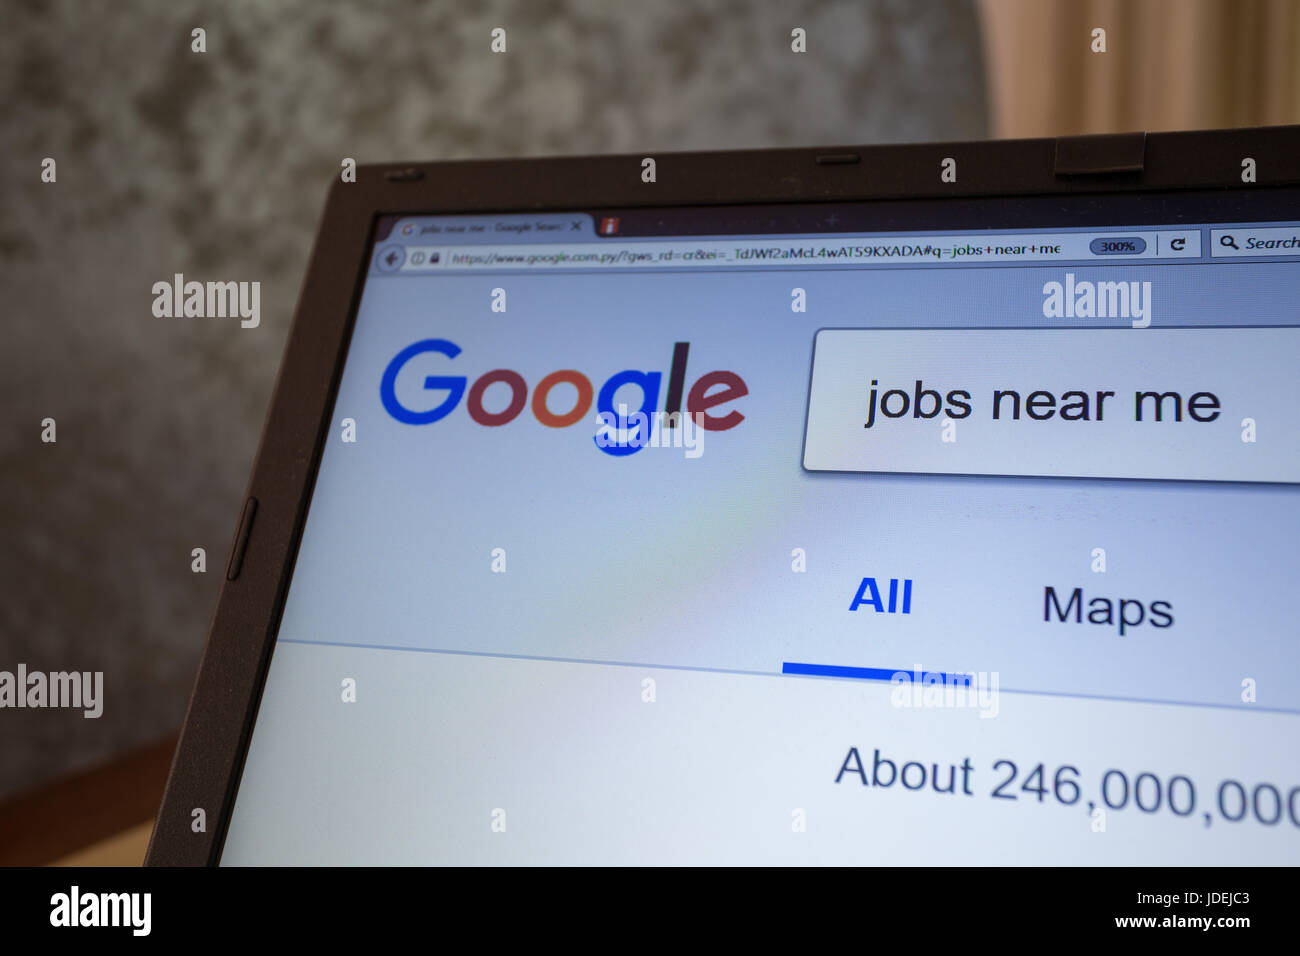 A Notebook Display Shows Google Search Engine For Jobs Near Me